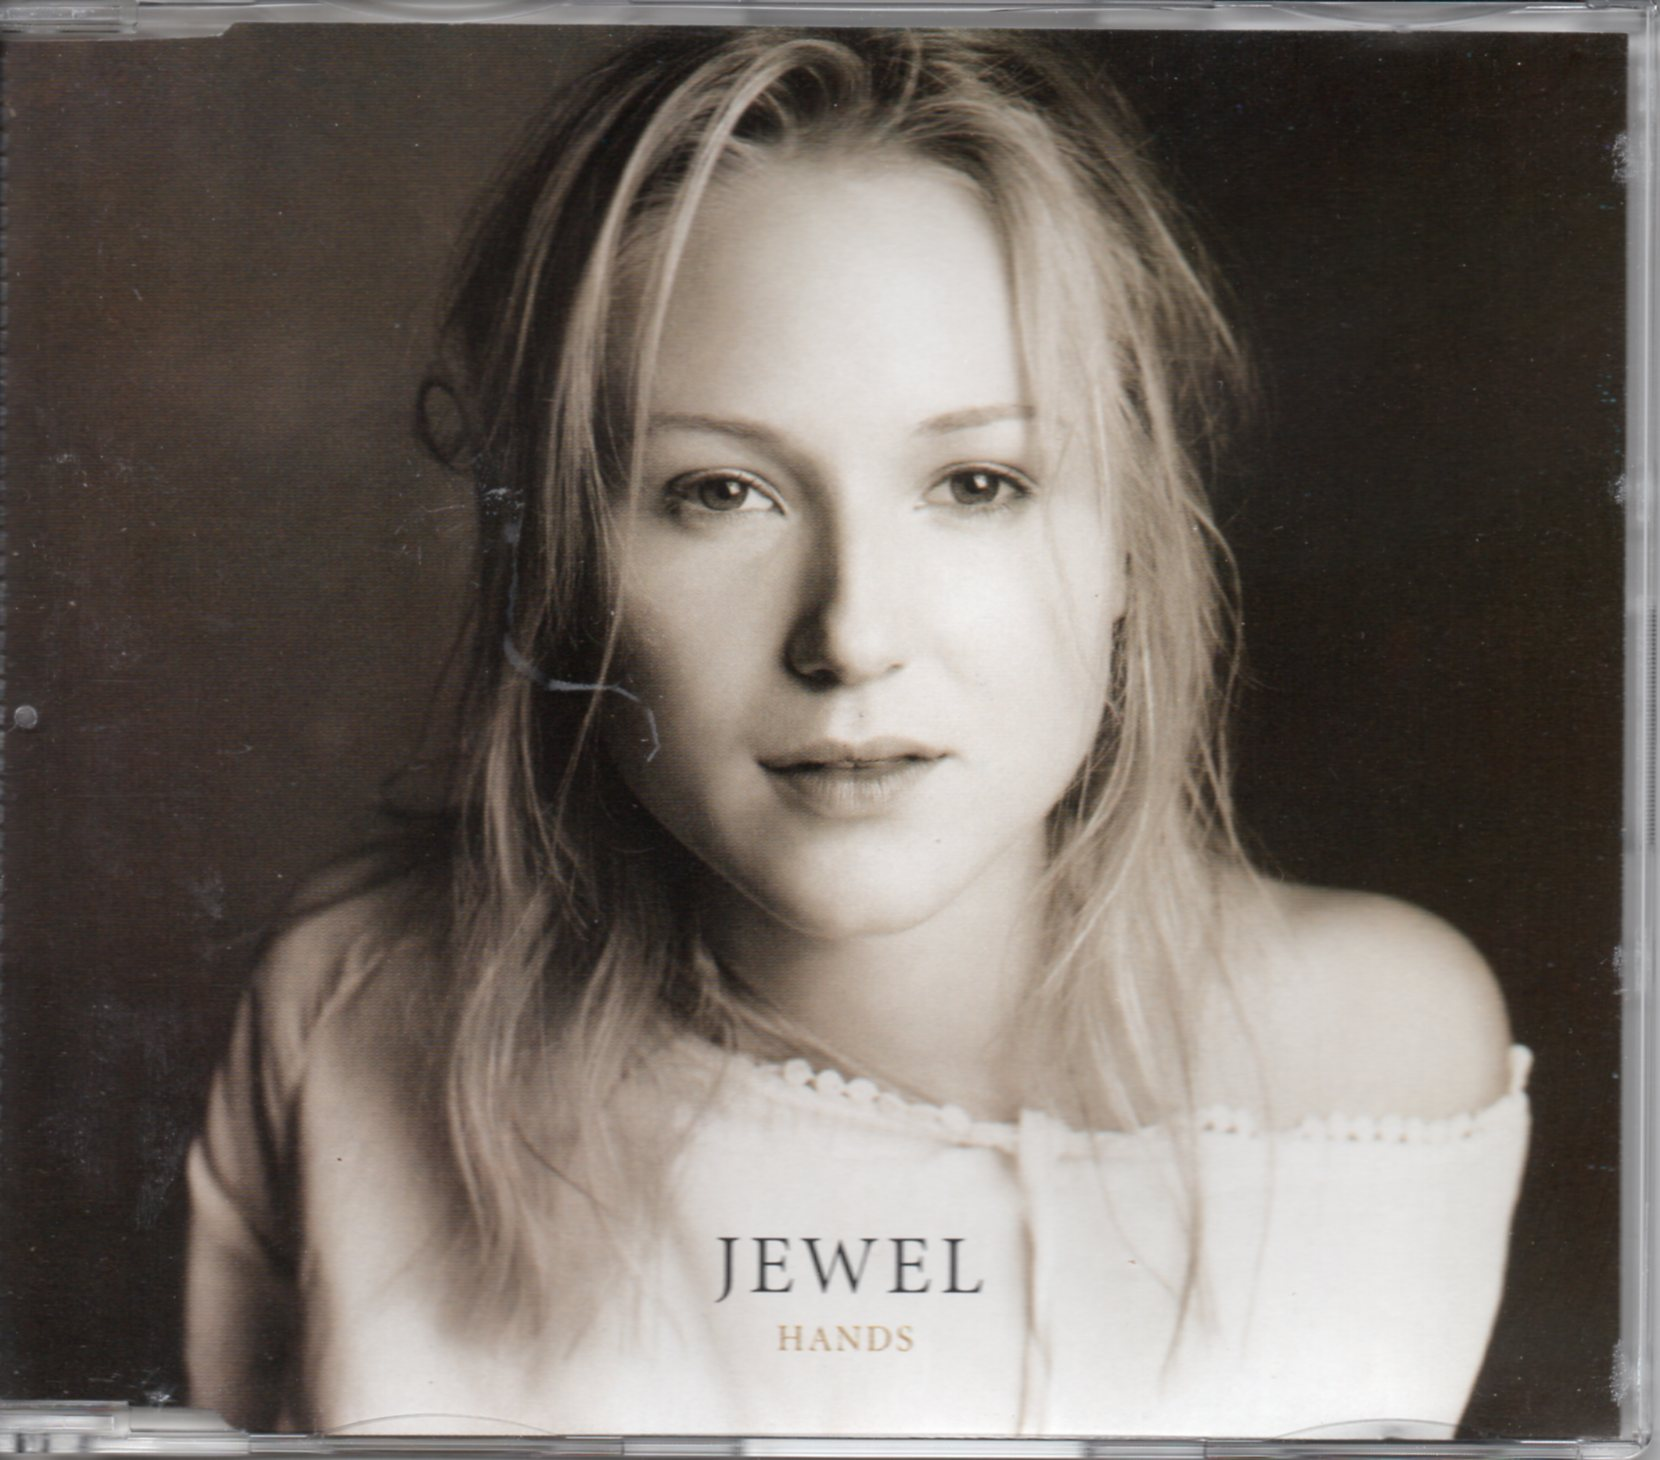 JEWEL - Hands 3-track jewel case - CD Maxi